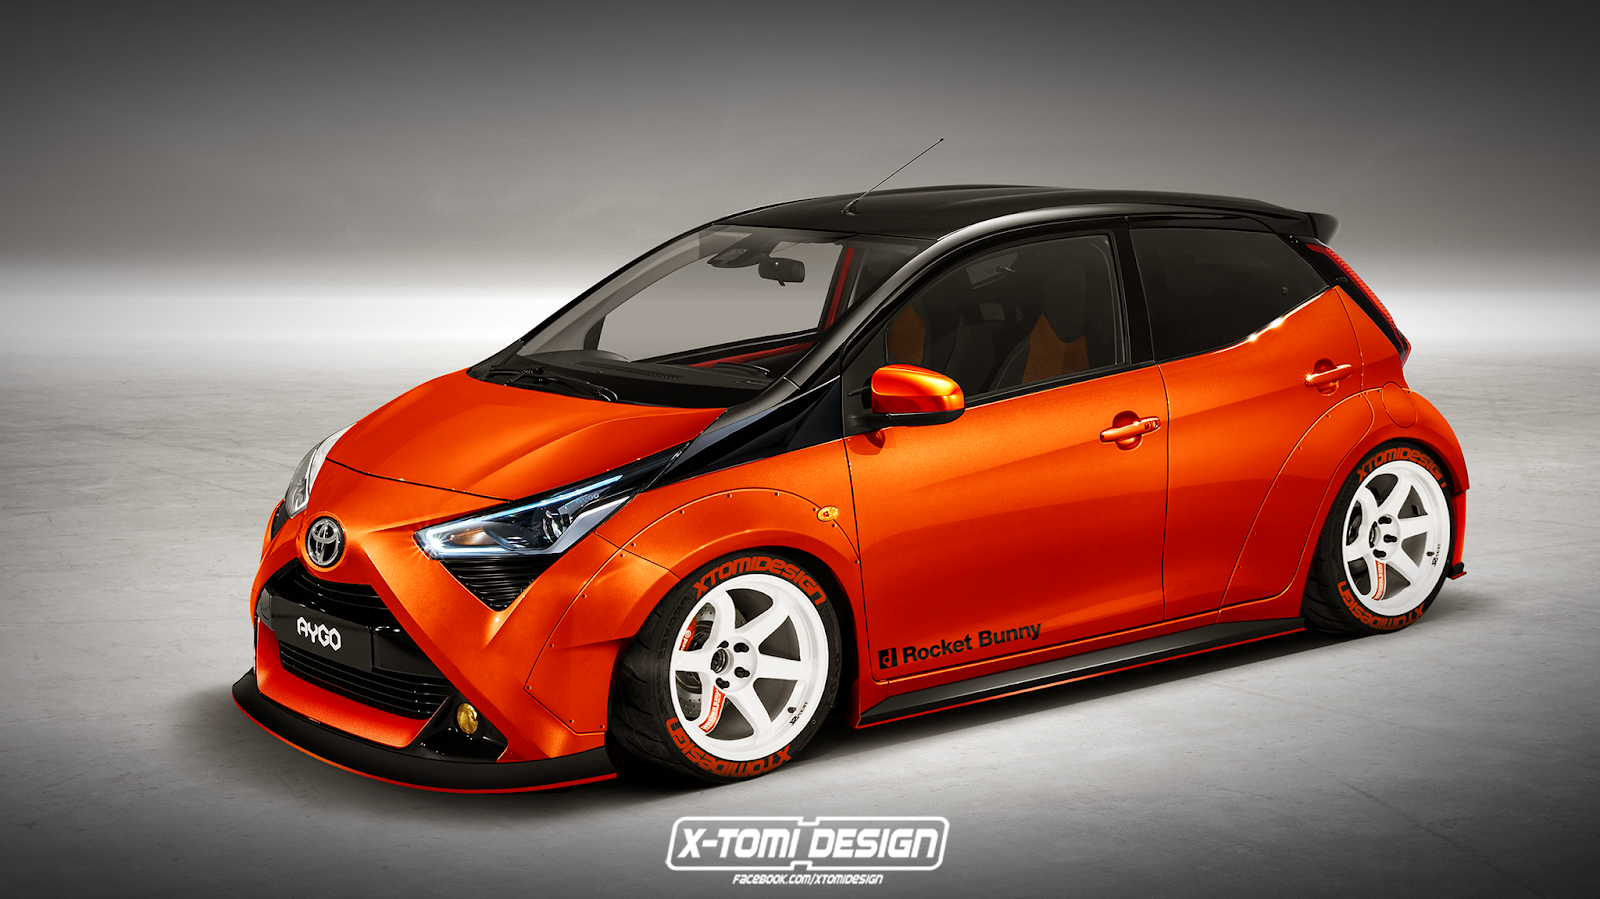 Toyota Aygo Rocket Bunny by X-Tomi Design '2018